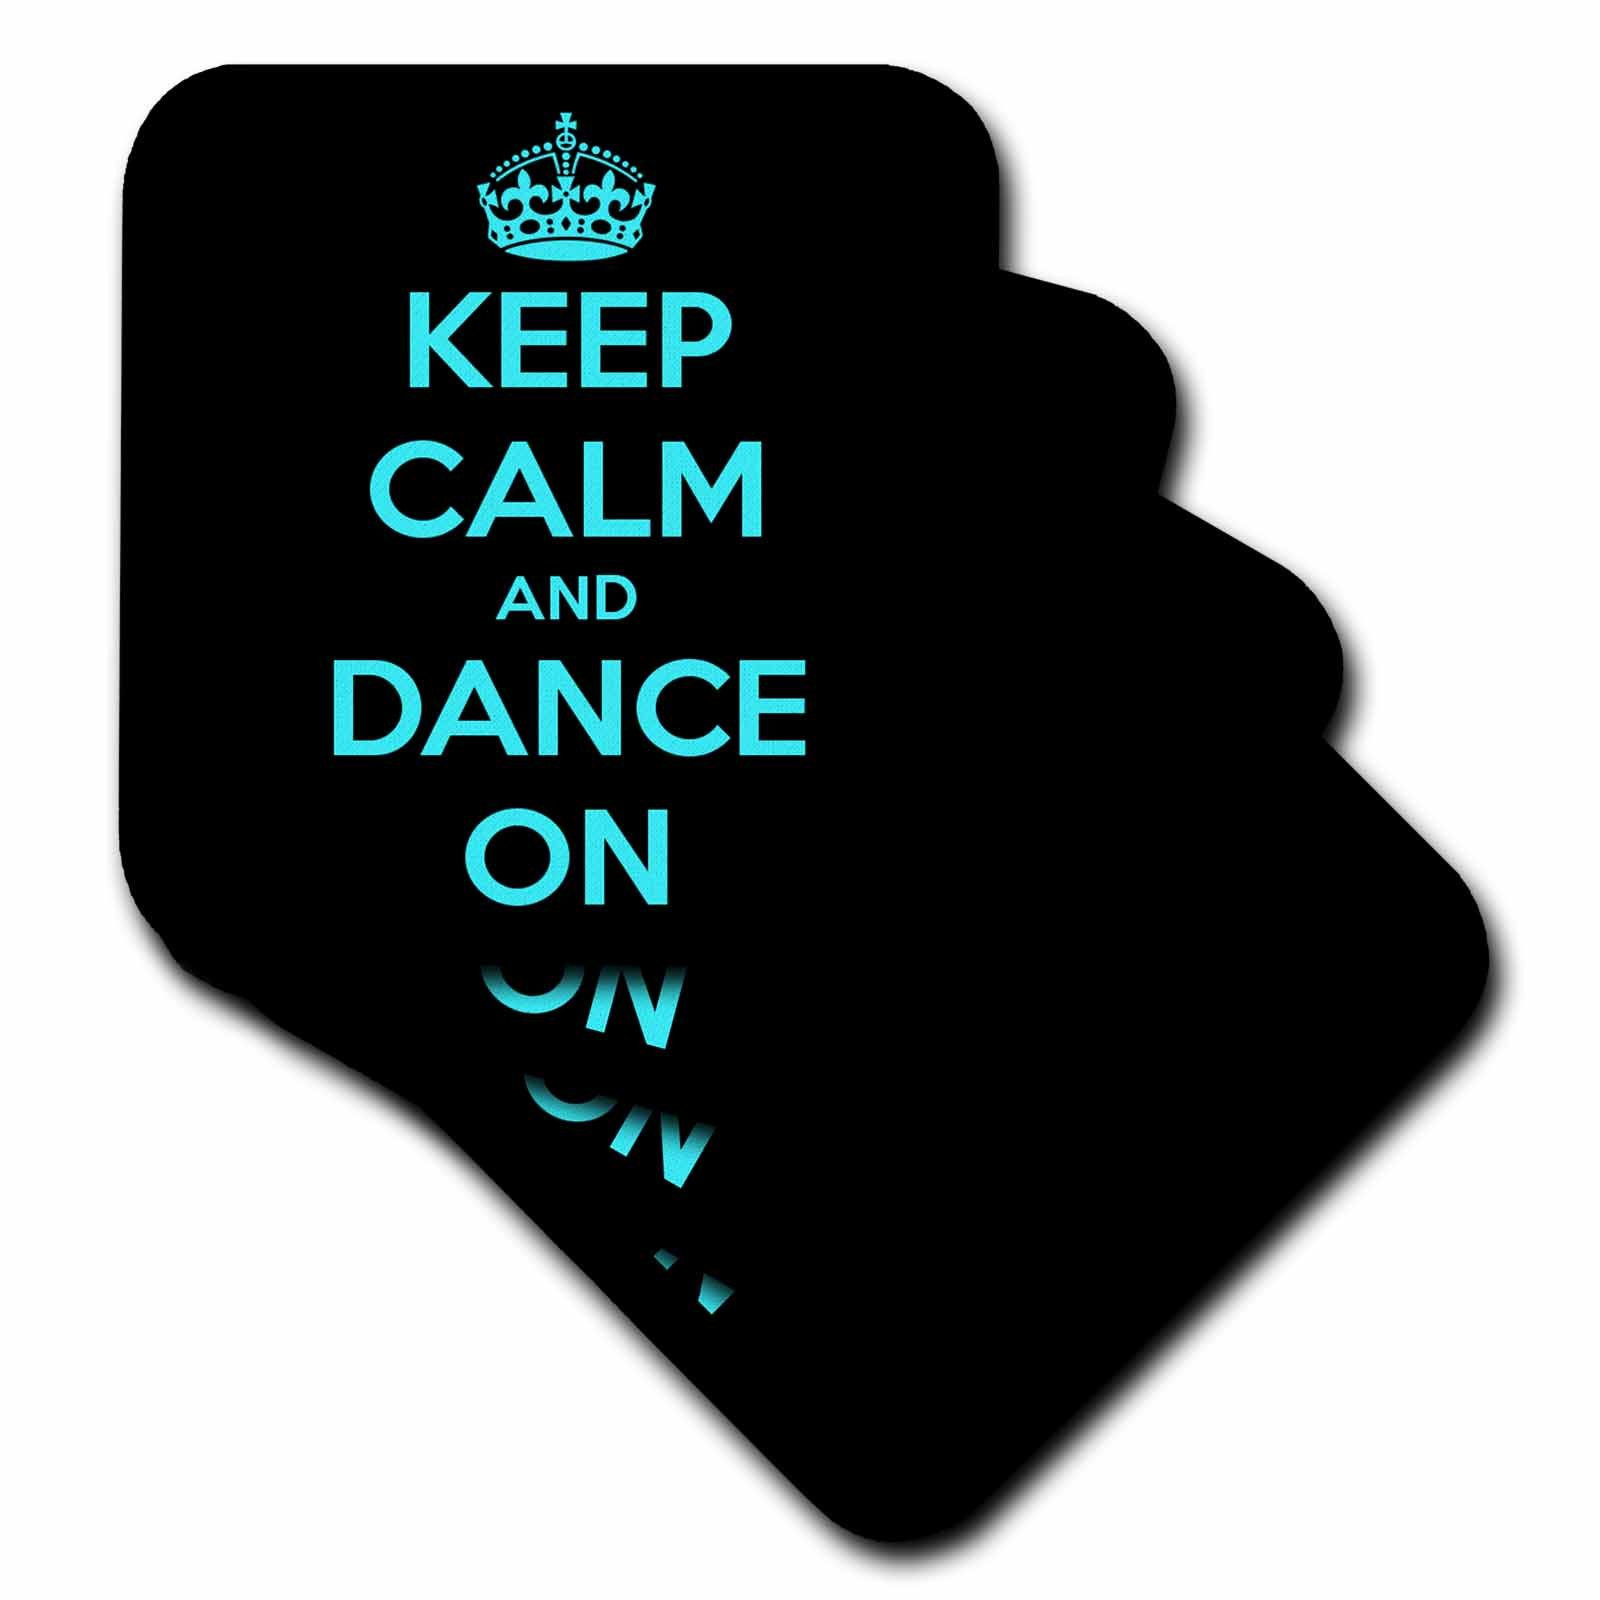 3dRose cst_163926_3 Keep Calm and Dance On. Black and Turquoise-Ceramic Tile Coasters, Set of 4